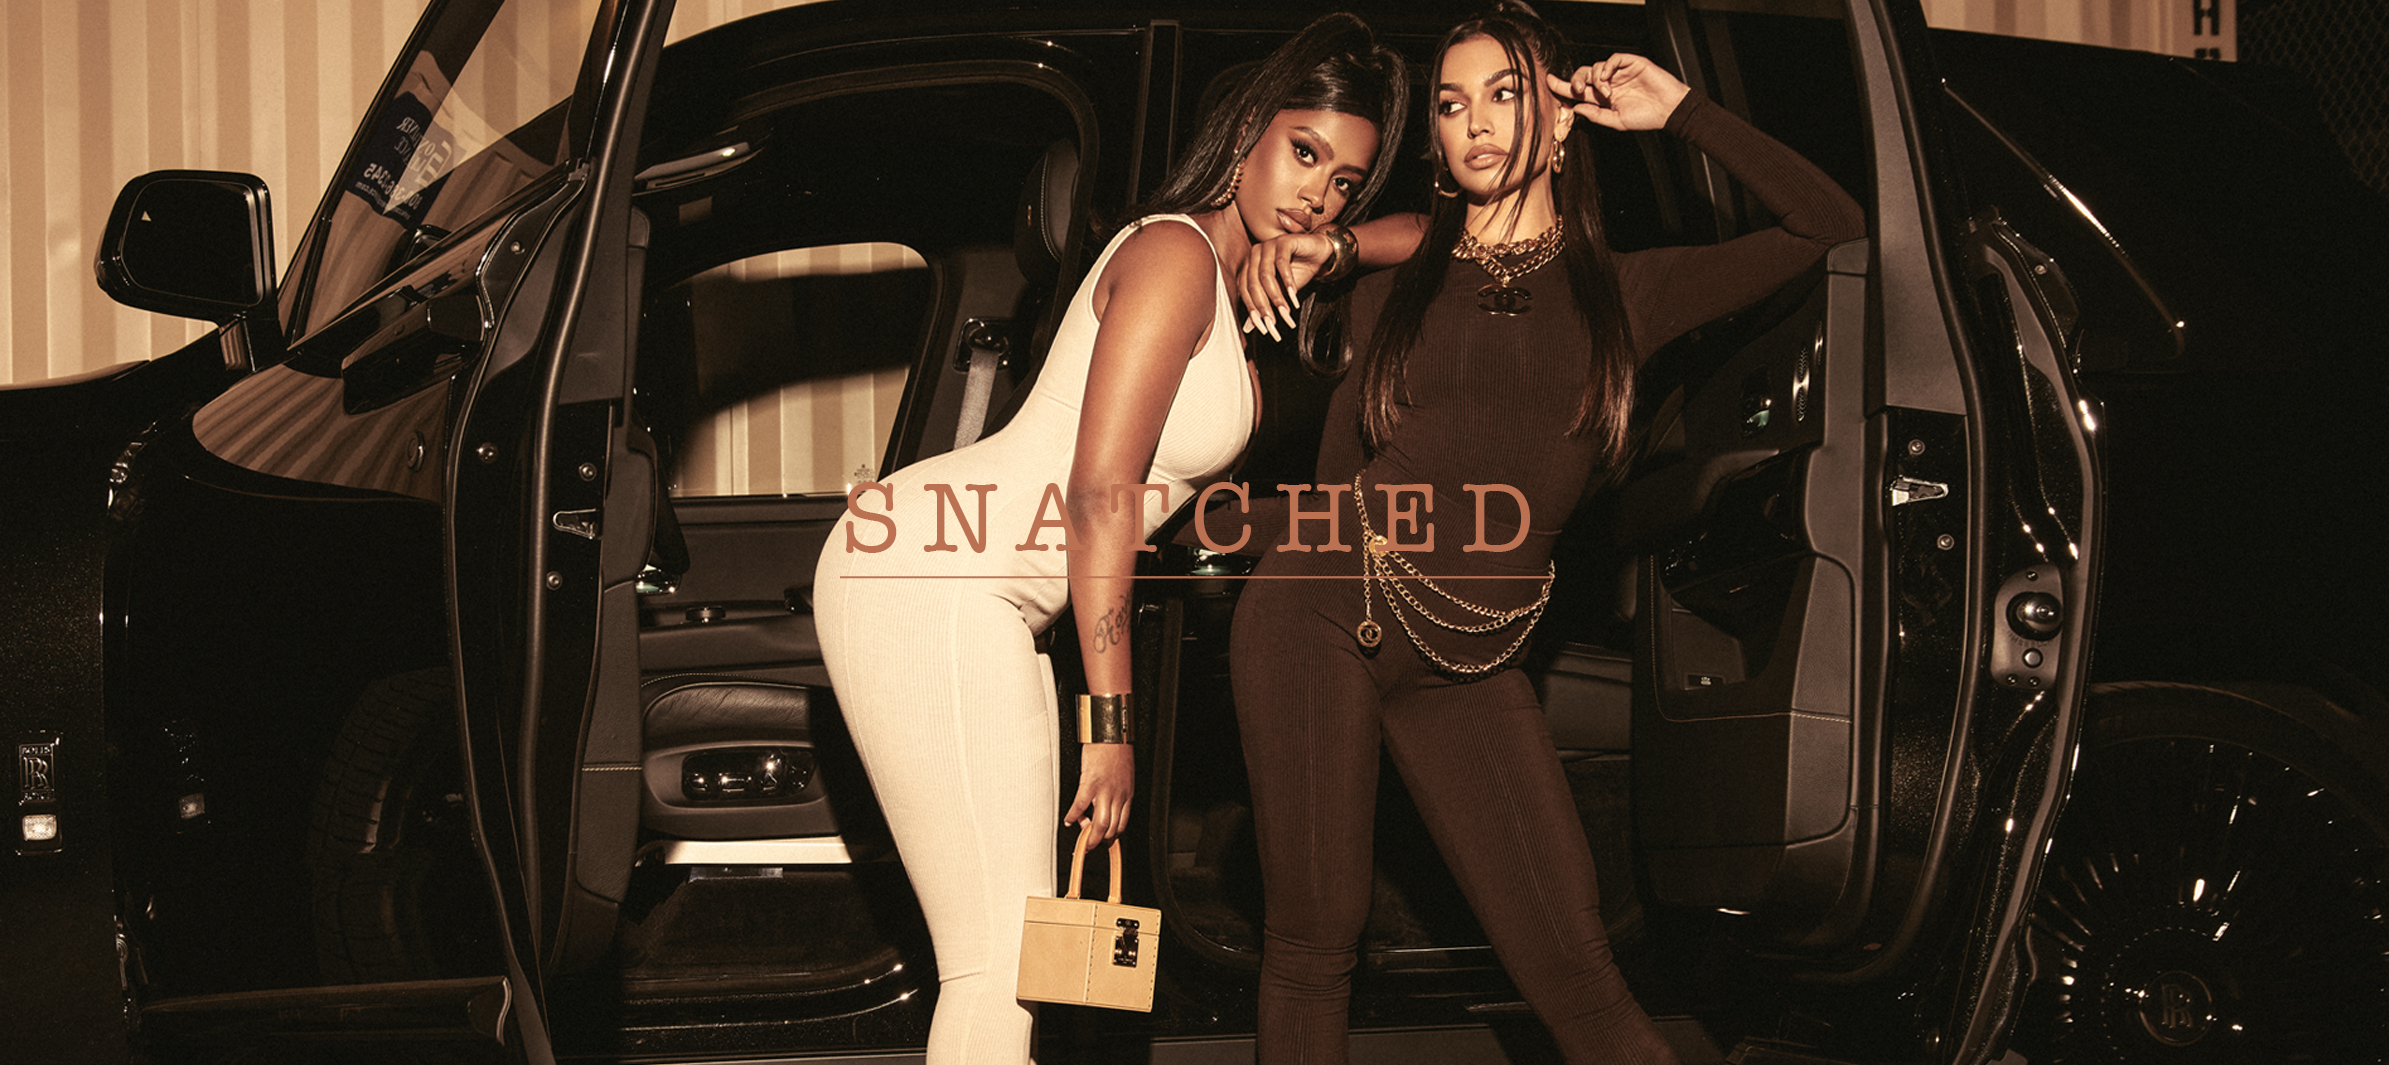 SNATCHED IV